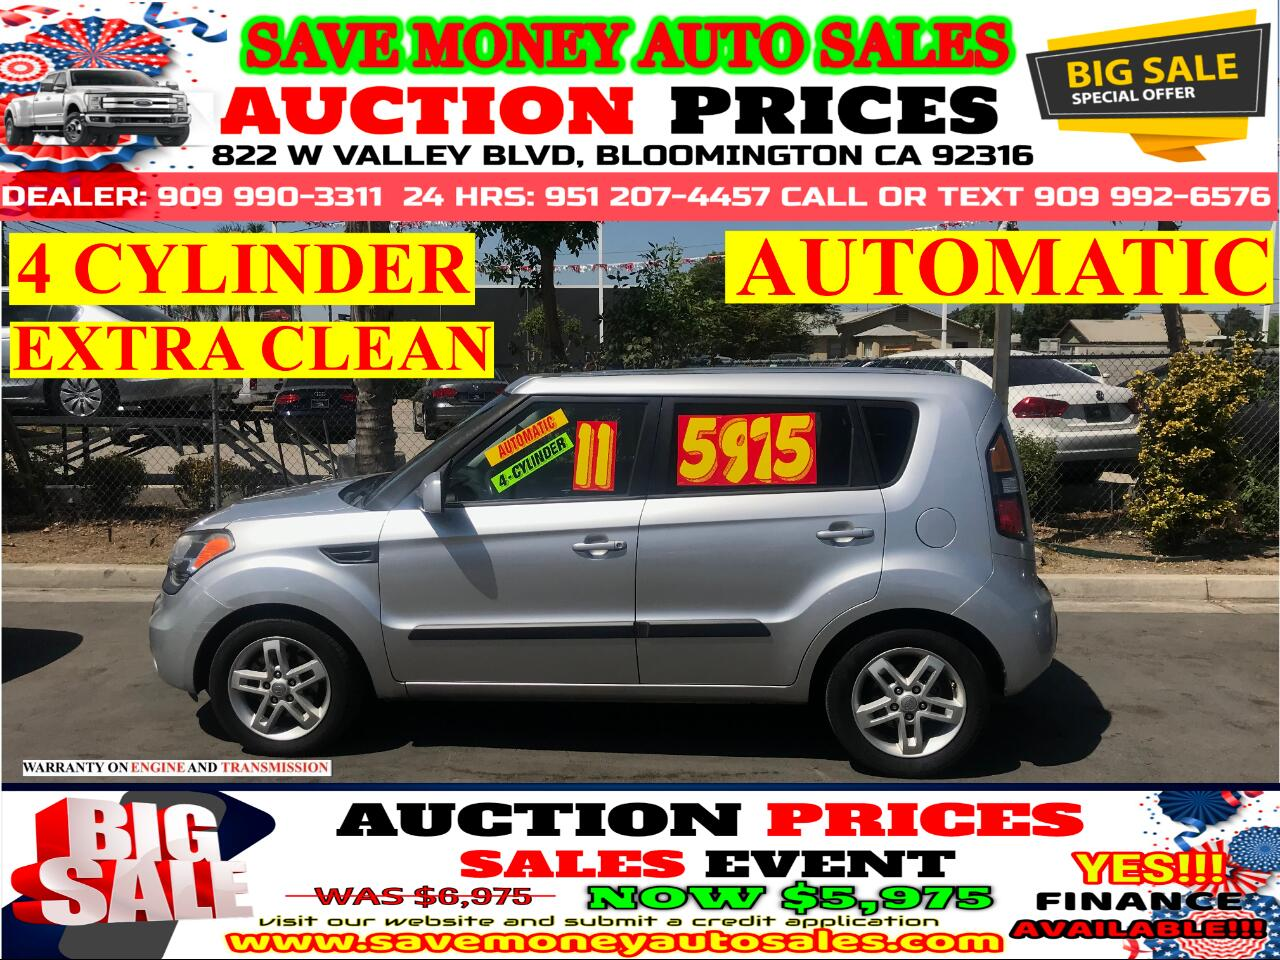 2011 Kia Soul 4 CYLINDER> EXTRA CLEAN> AUTOMATIC